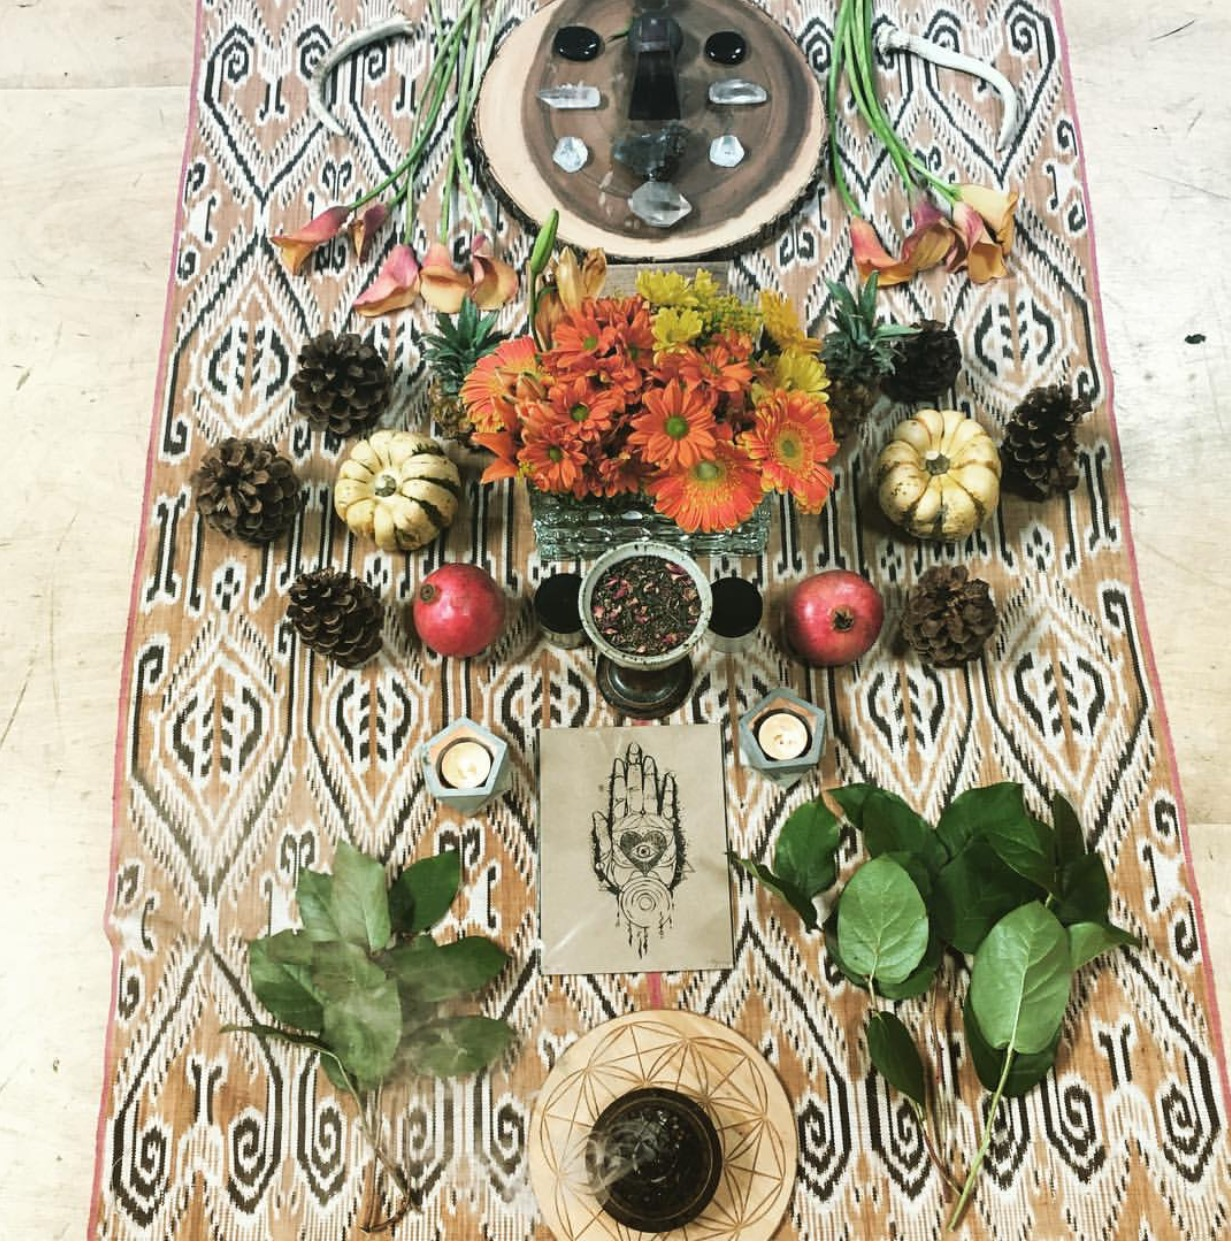 Lovely Solar Plexus and Sacral Chakra Altar just for the Women in attendance. Created by Hasnaa.  Photo Credit: www.instagram.com/vibrationalmedicine